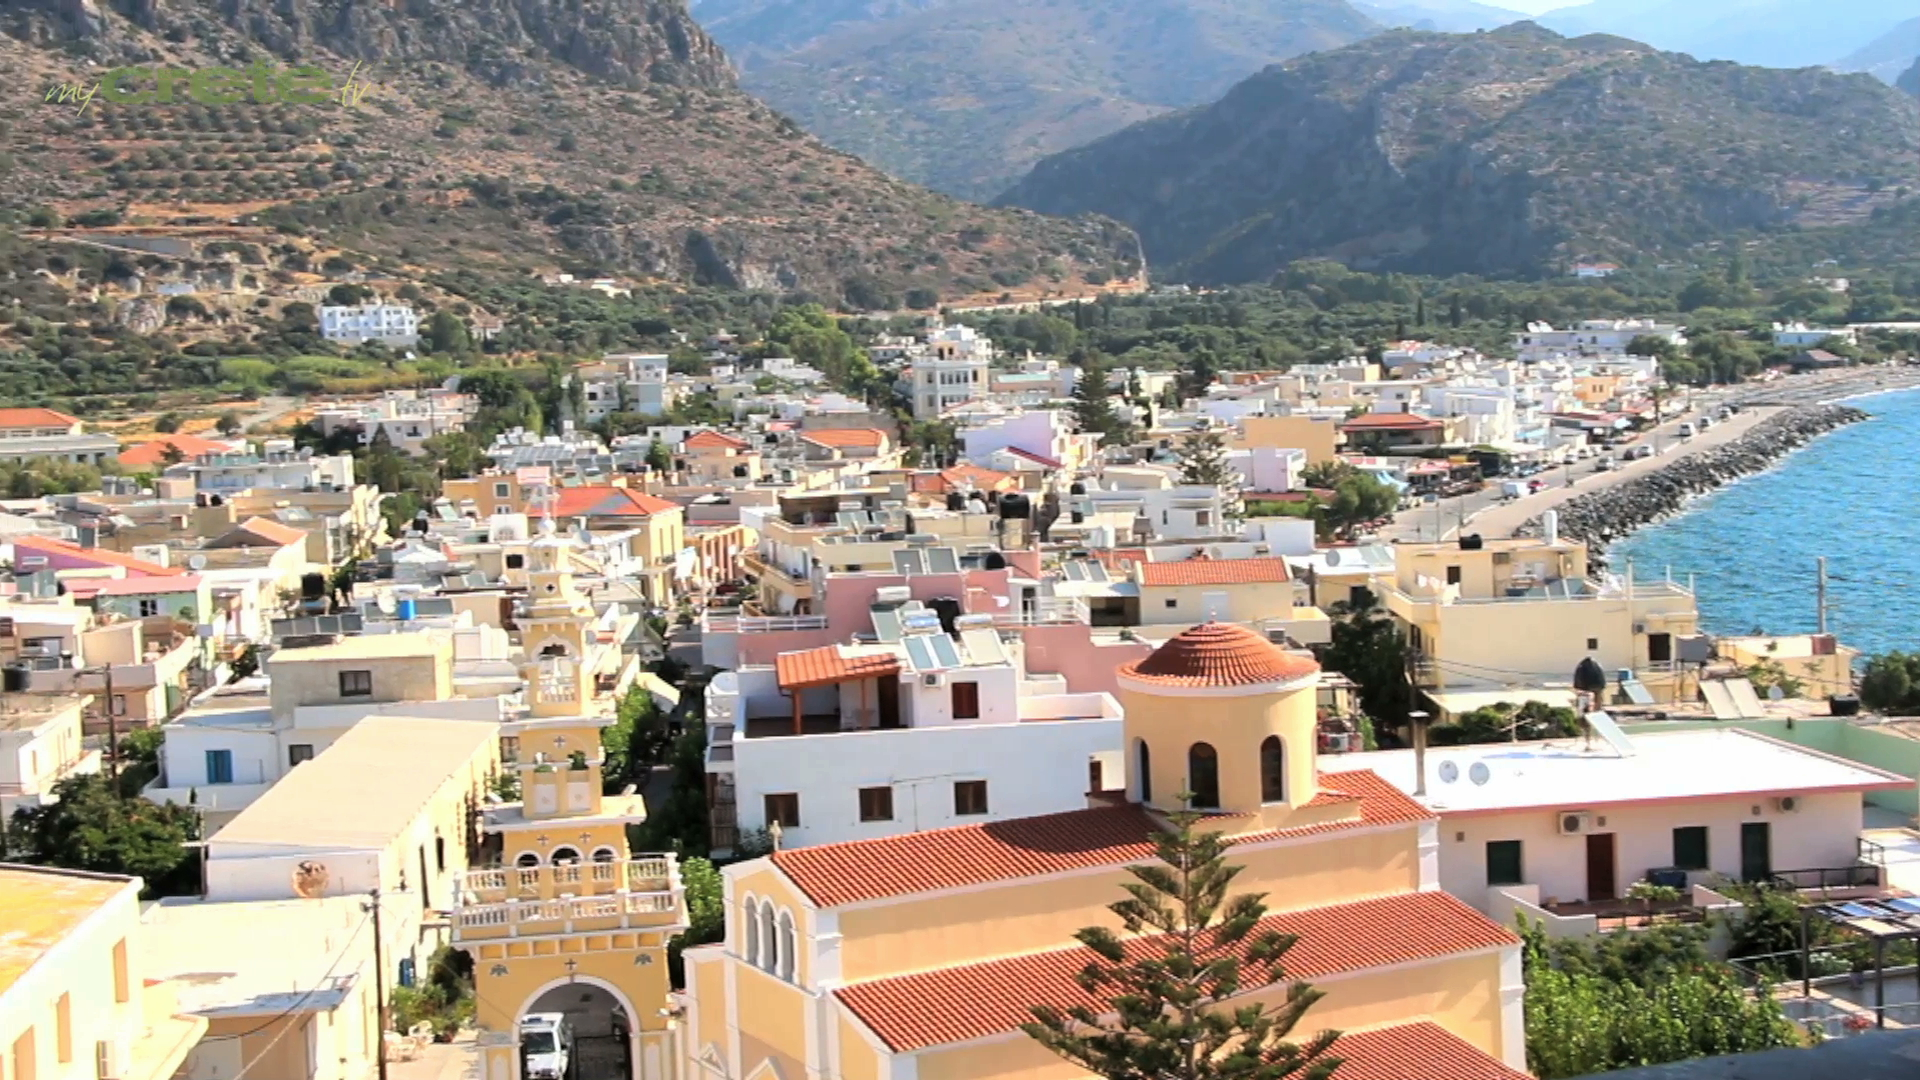 Towns and Villages of Crete